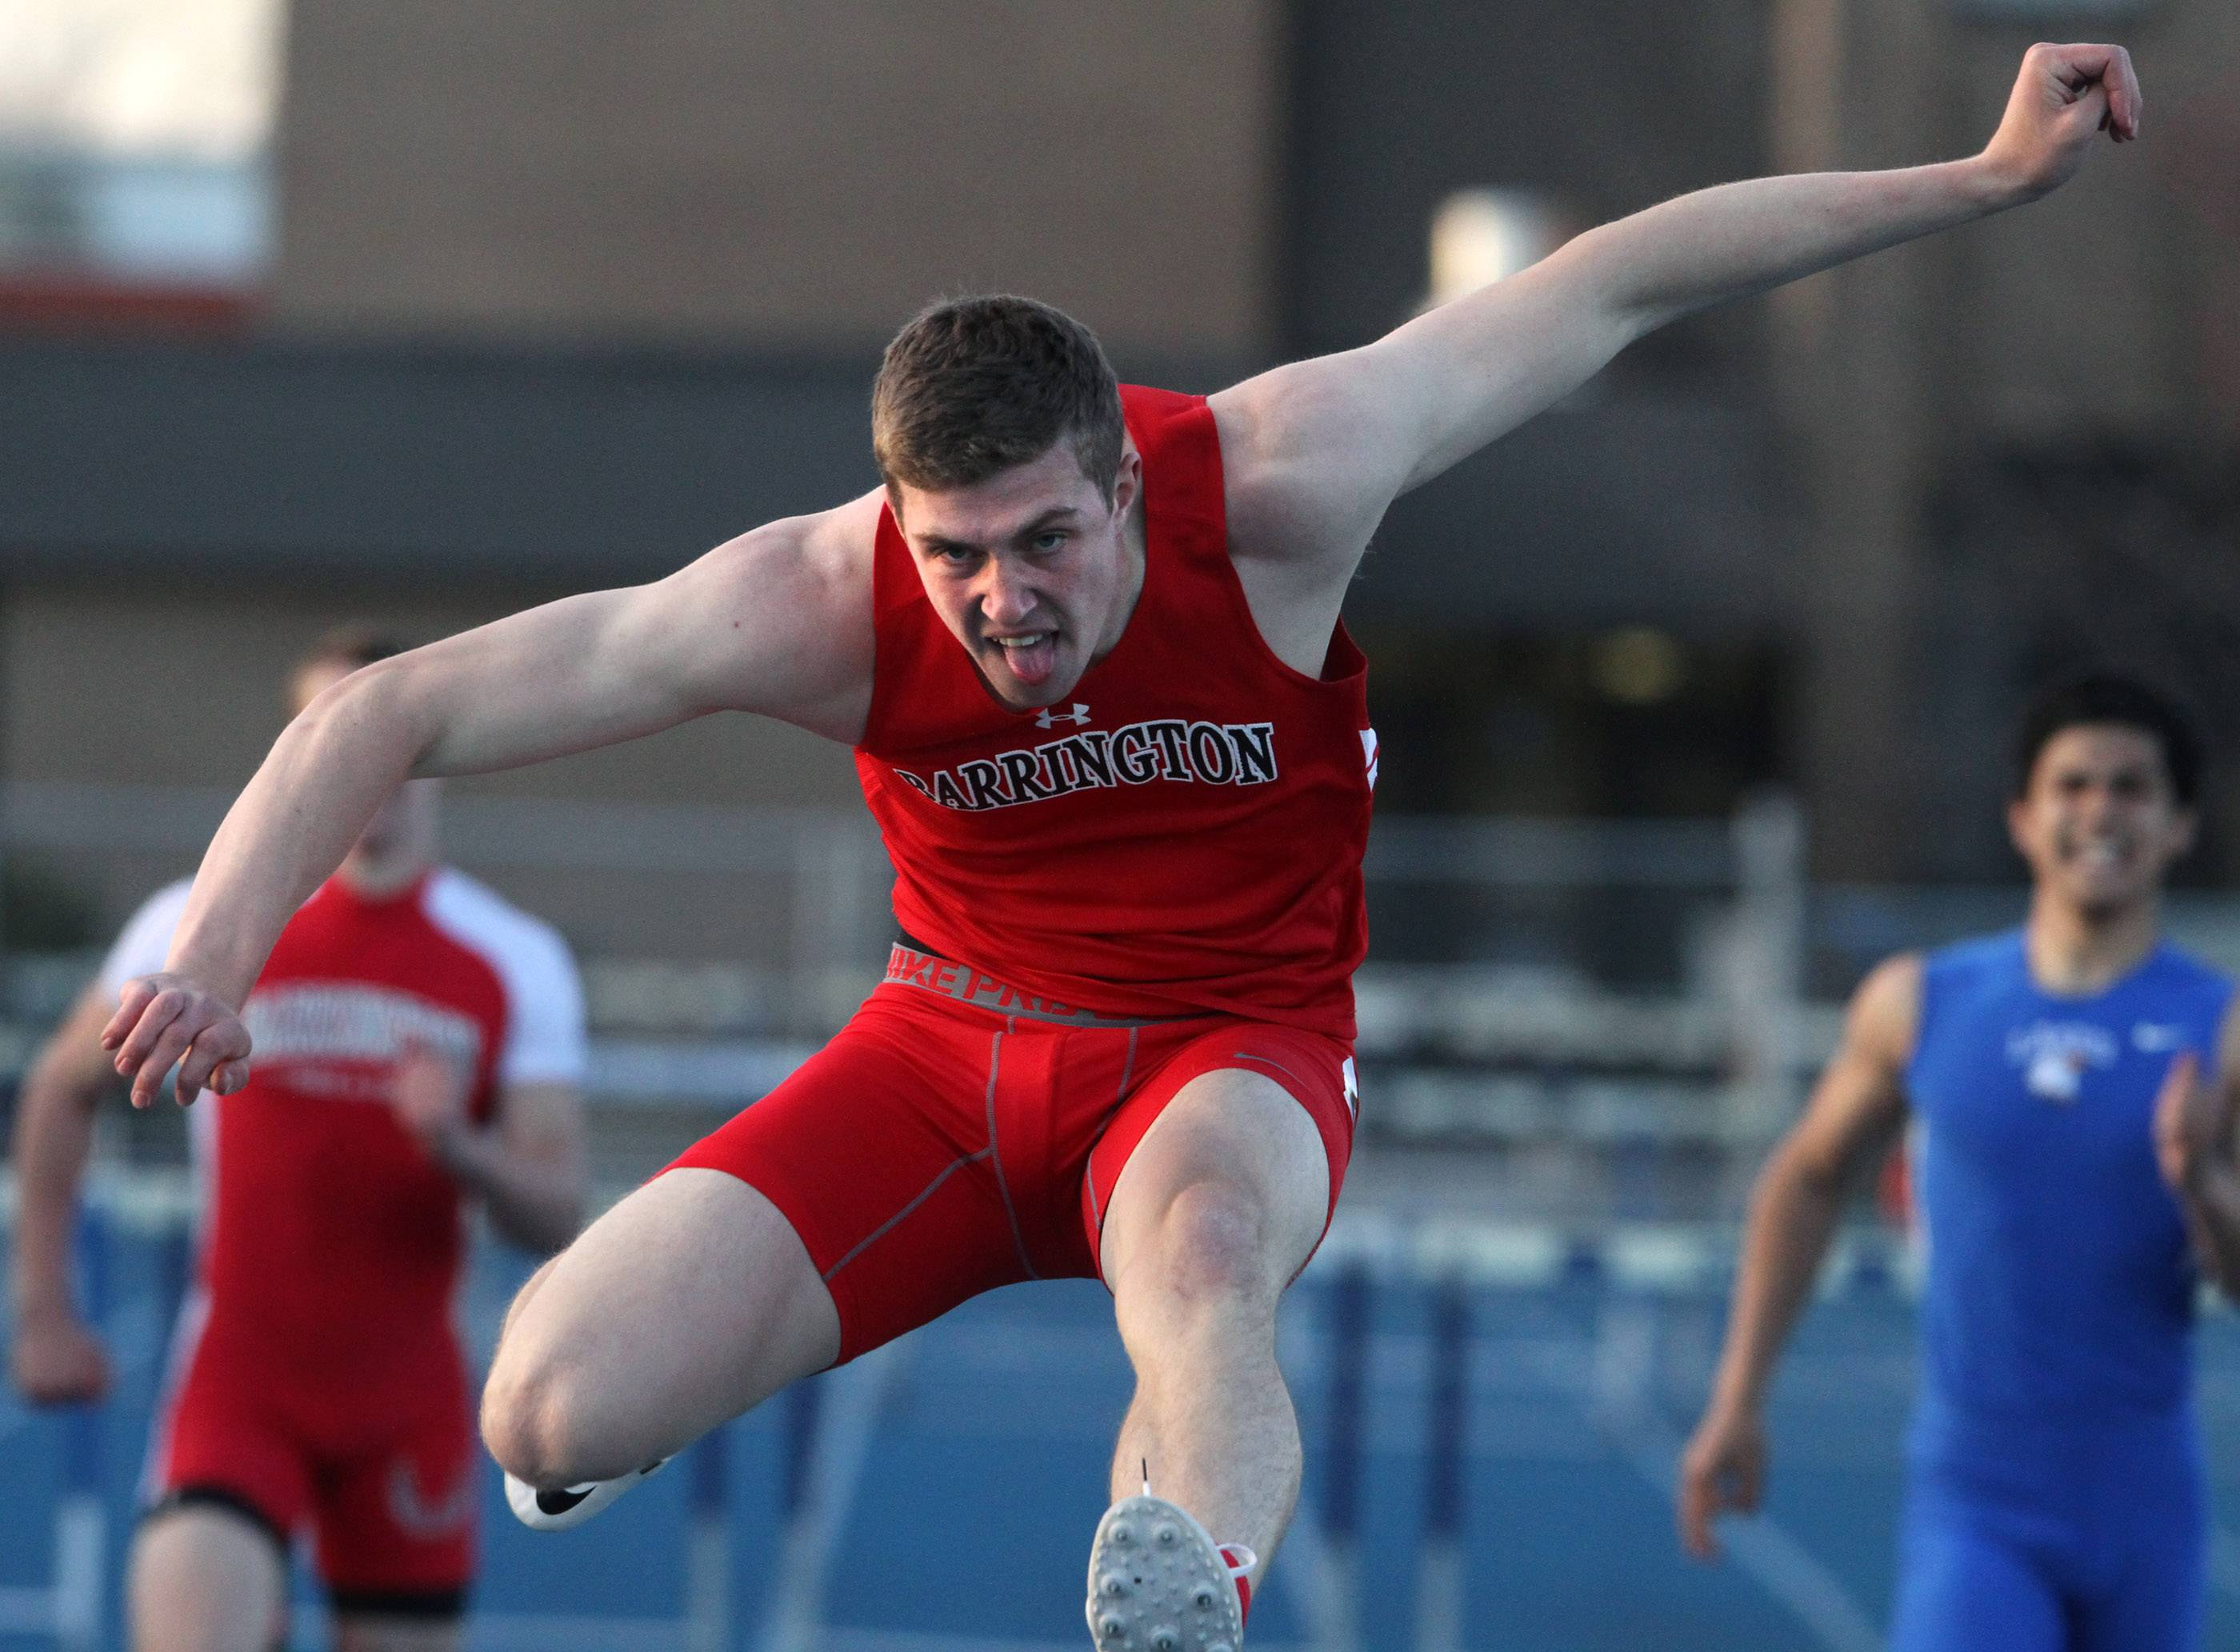 Barrington's Parker Deloye finishes first in the 300-meter hurdles at a Lake Zurich boys track invite on Friday.